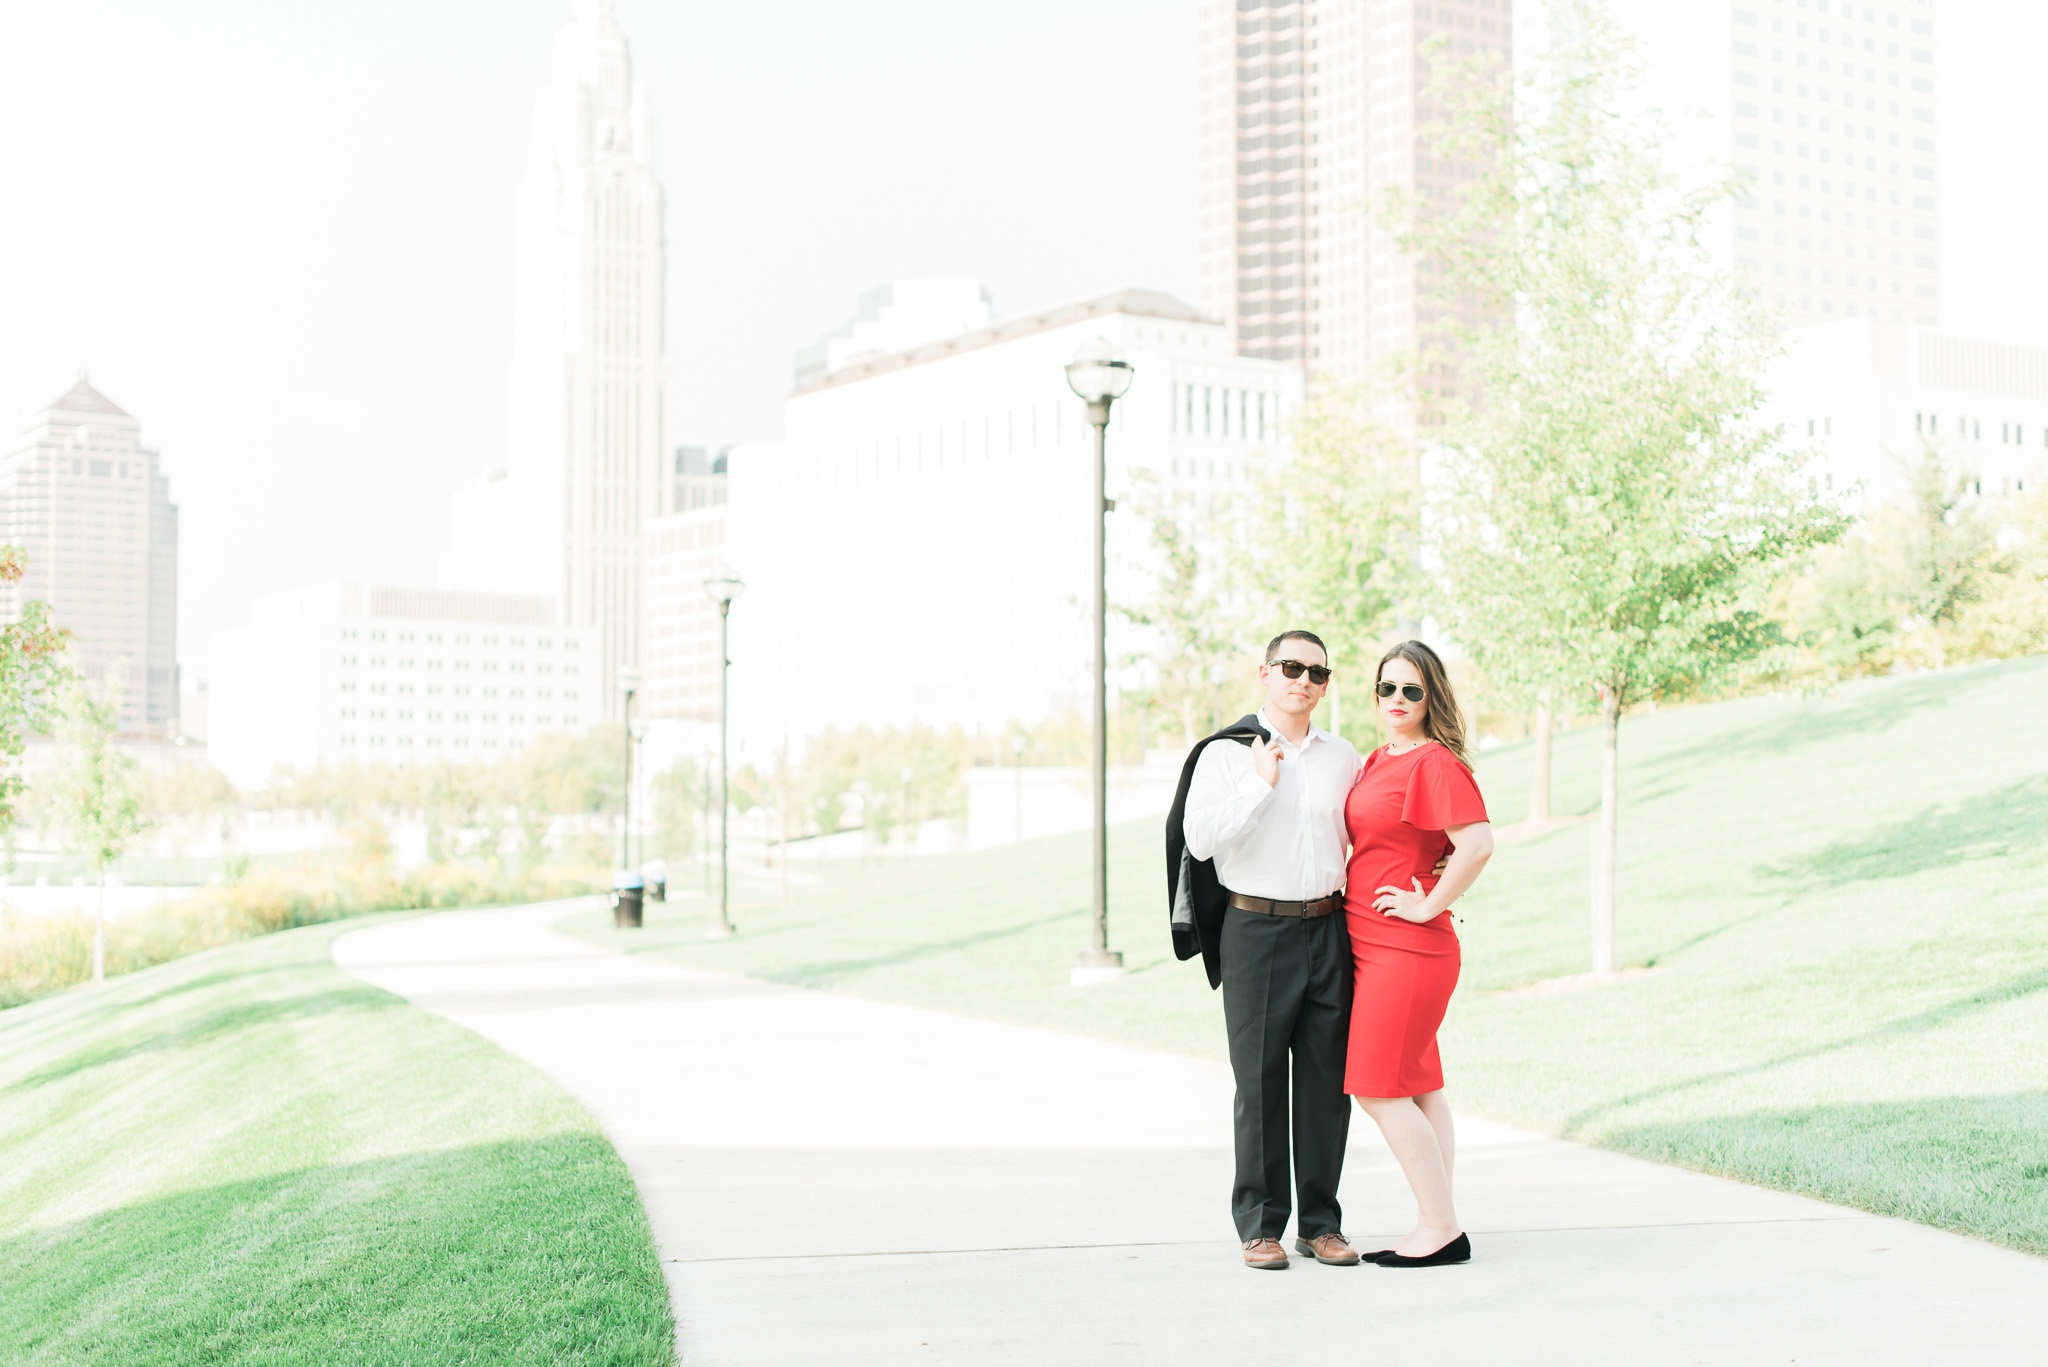 downtown-columbus-german-village-engagement-session-26.jpg